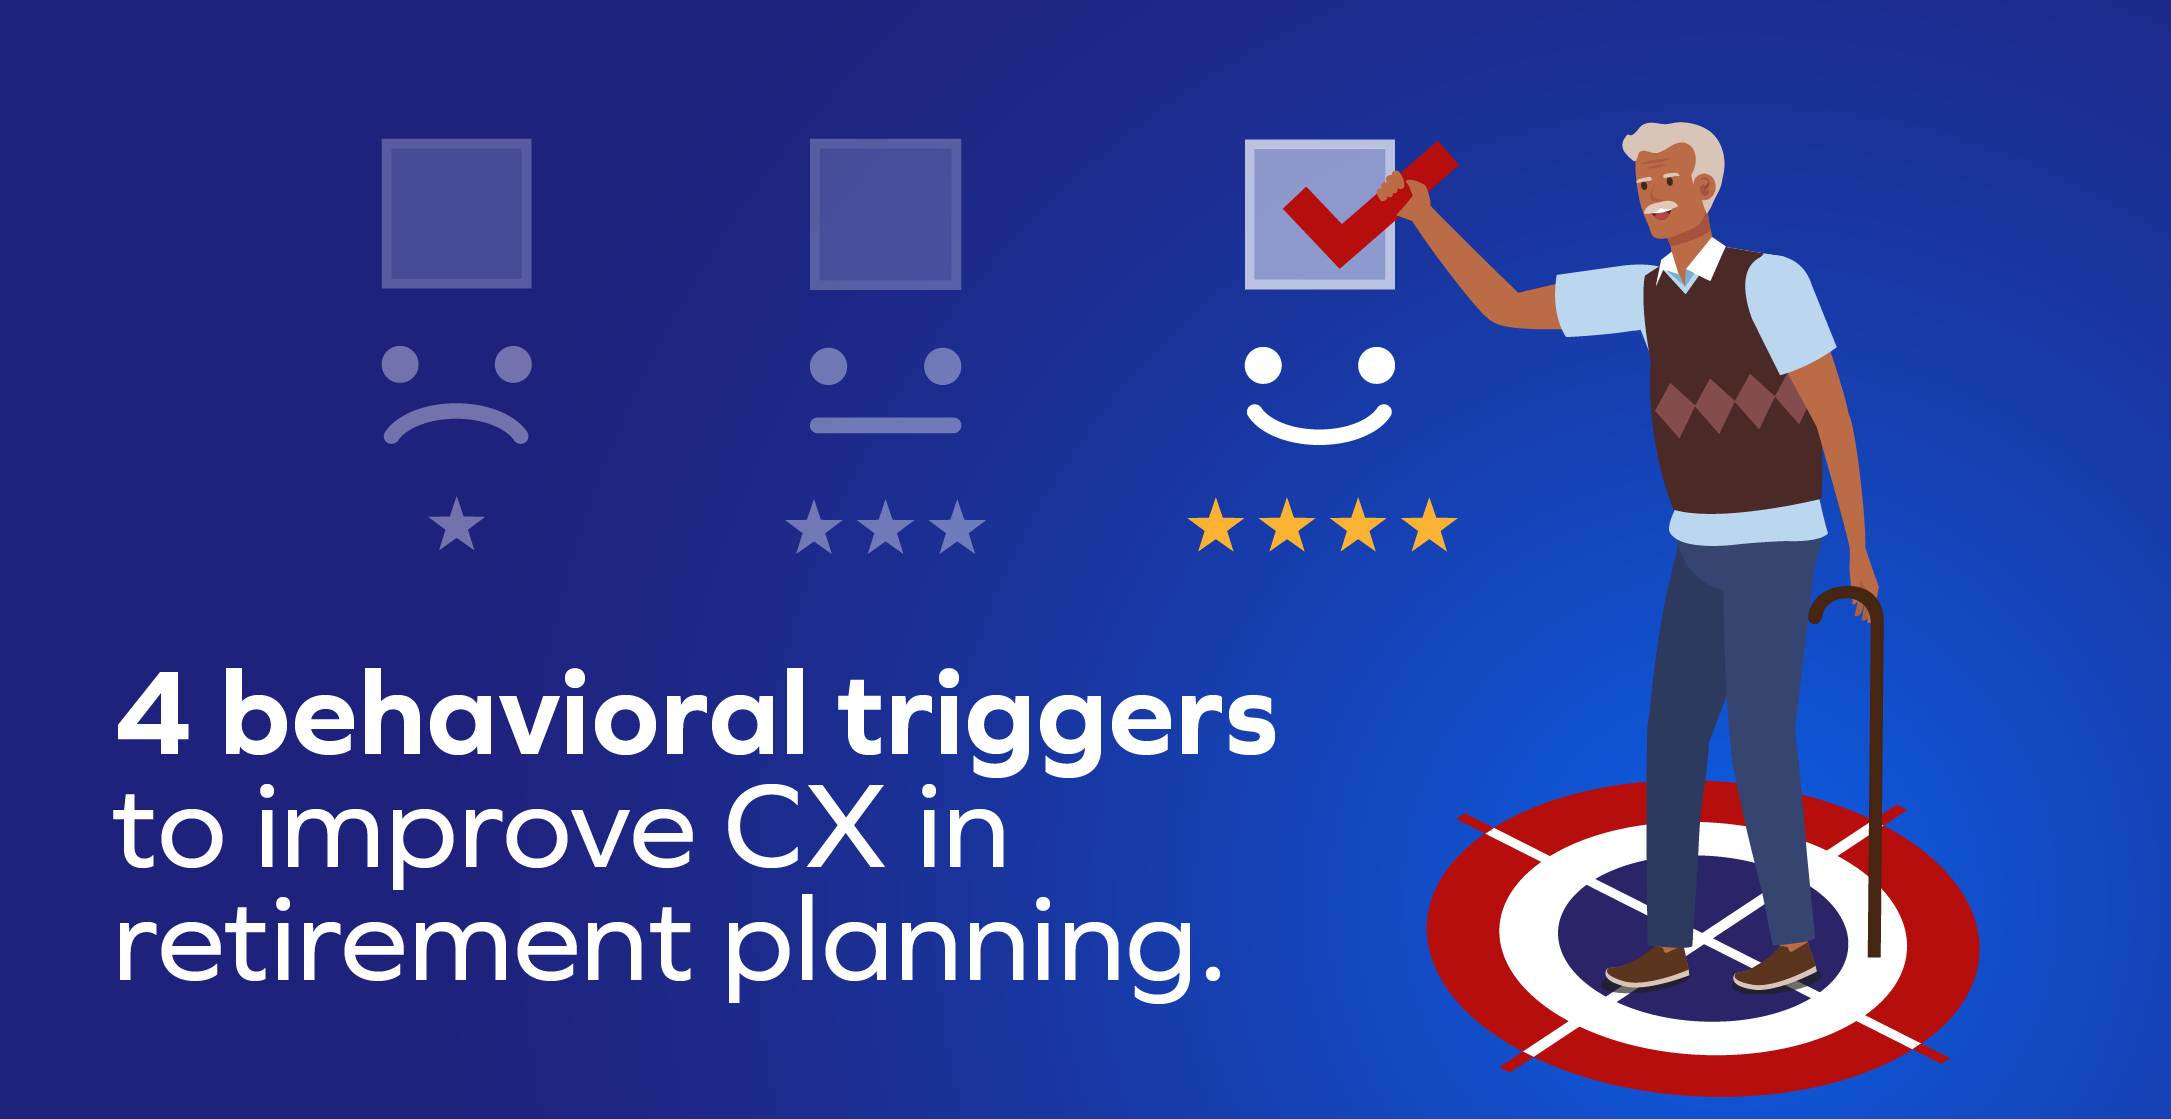 4 behavioral triggers to improve customer experience in retirement planning